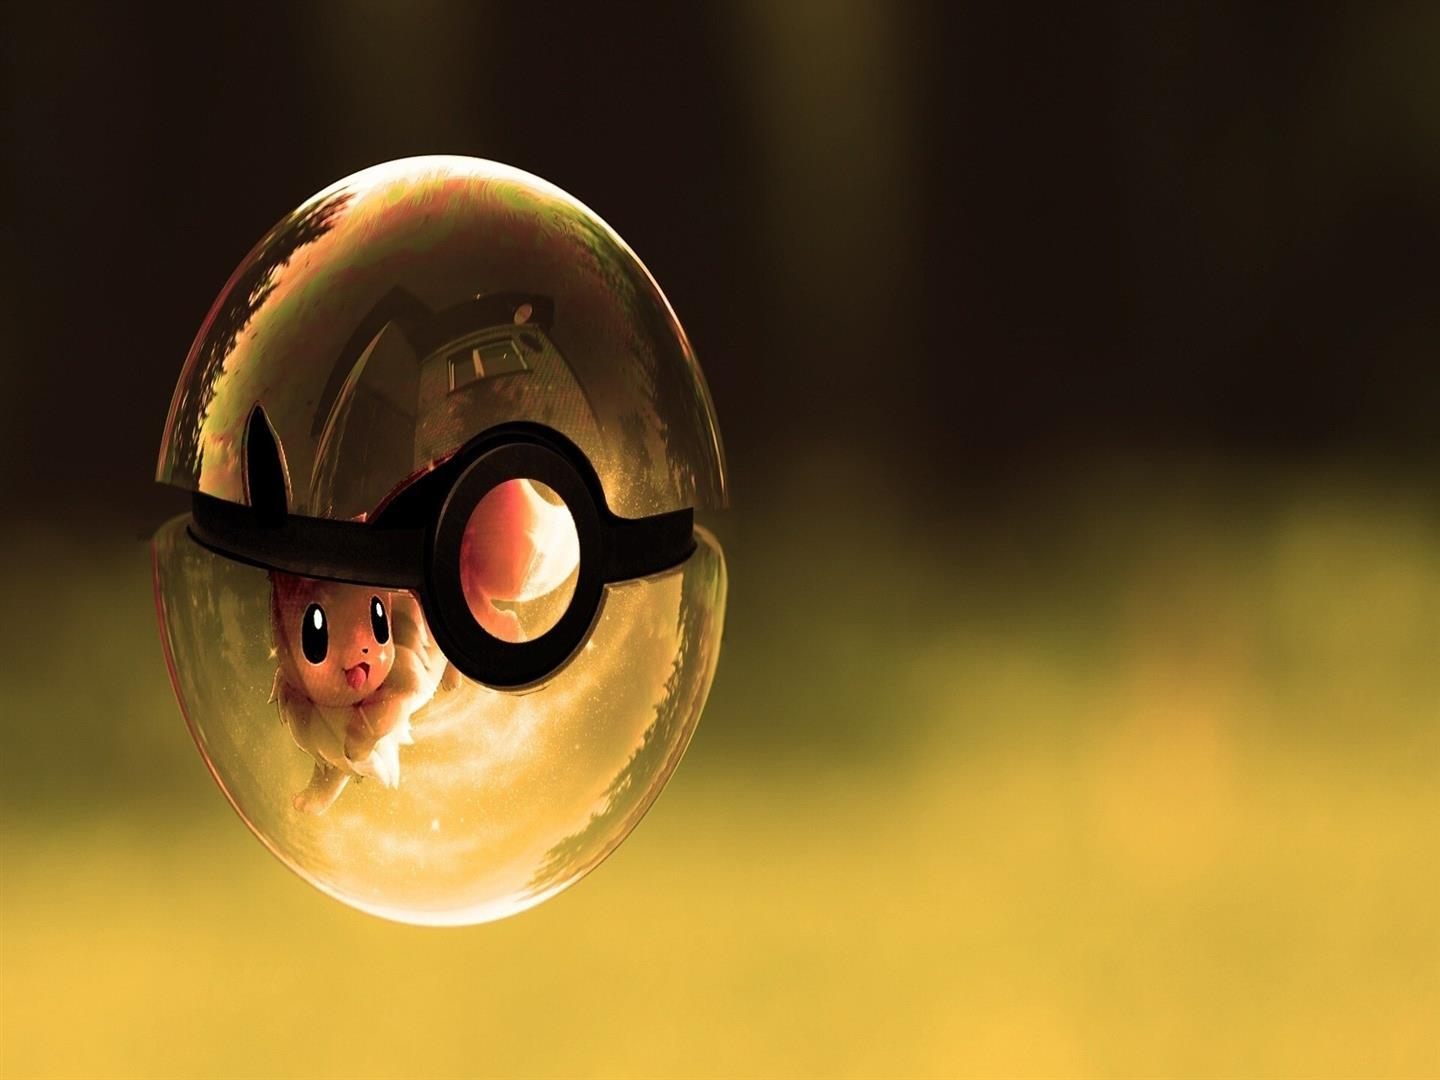 1440x1080 Cartoon Pokemon Ball HD Desktop Wallpaper